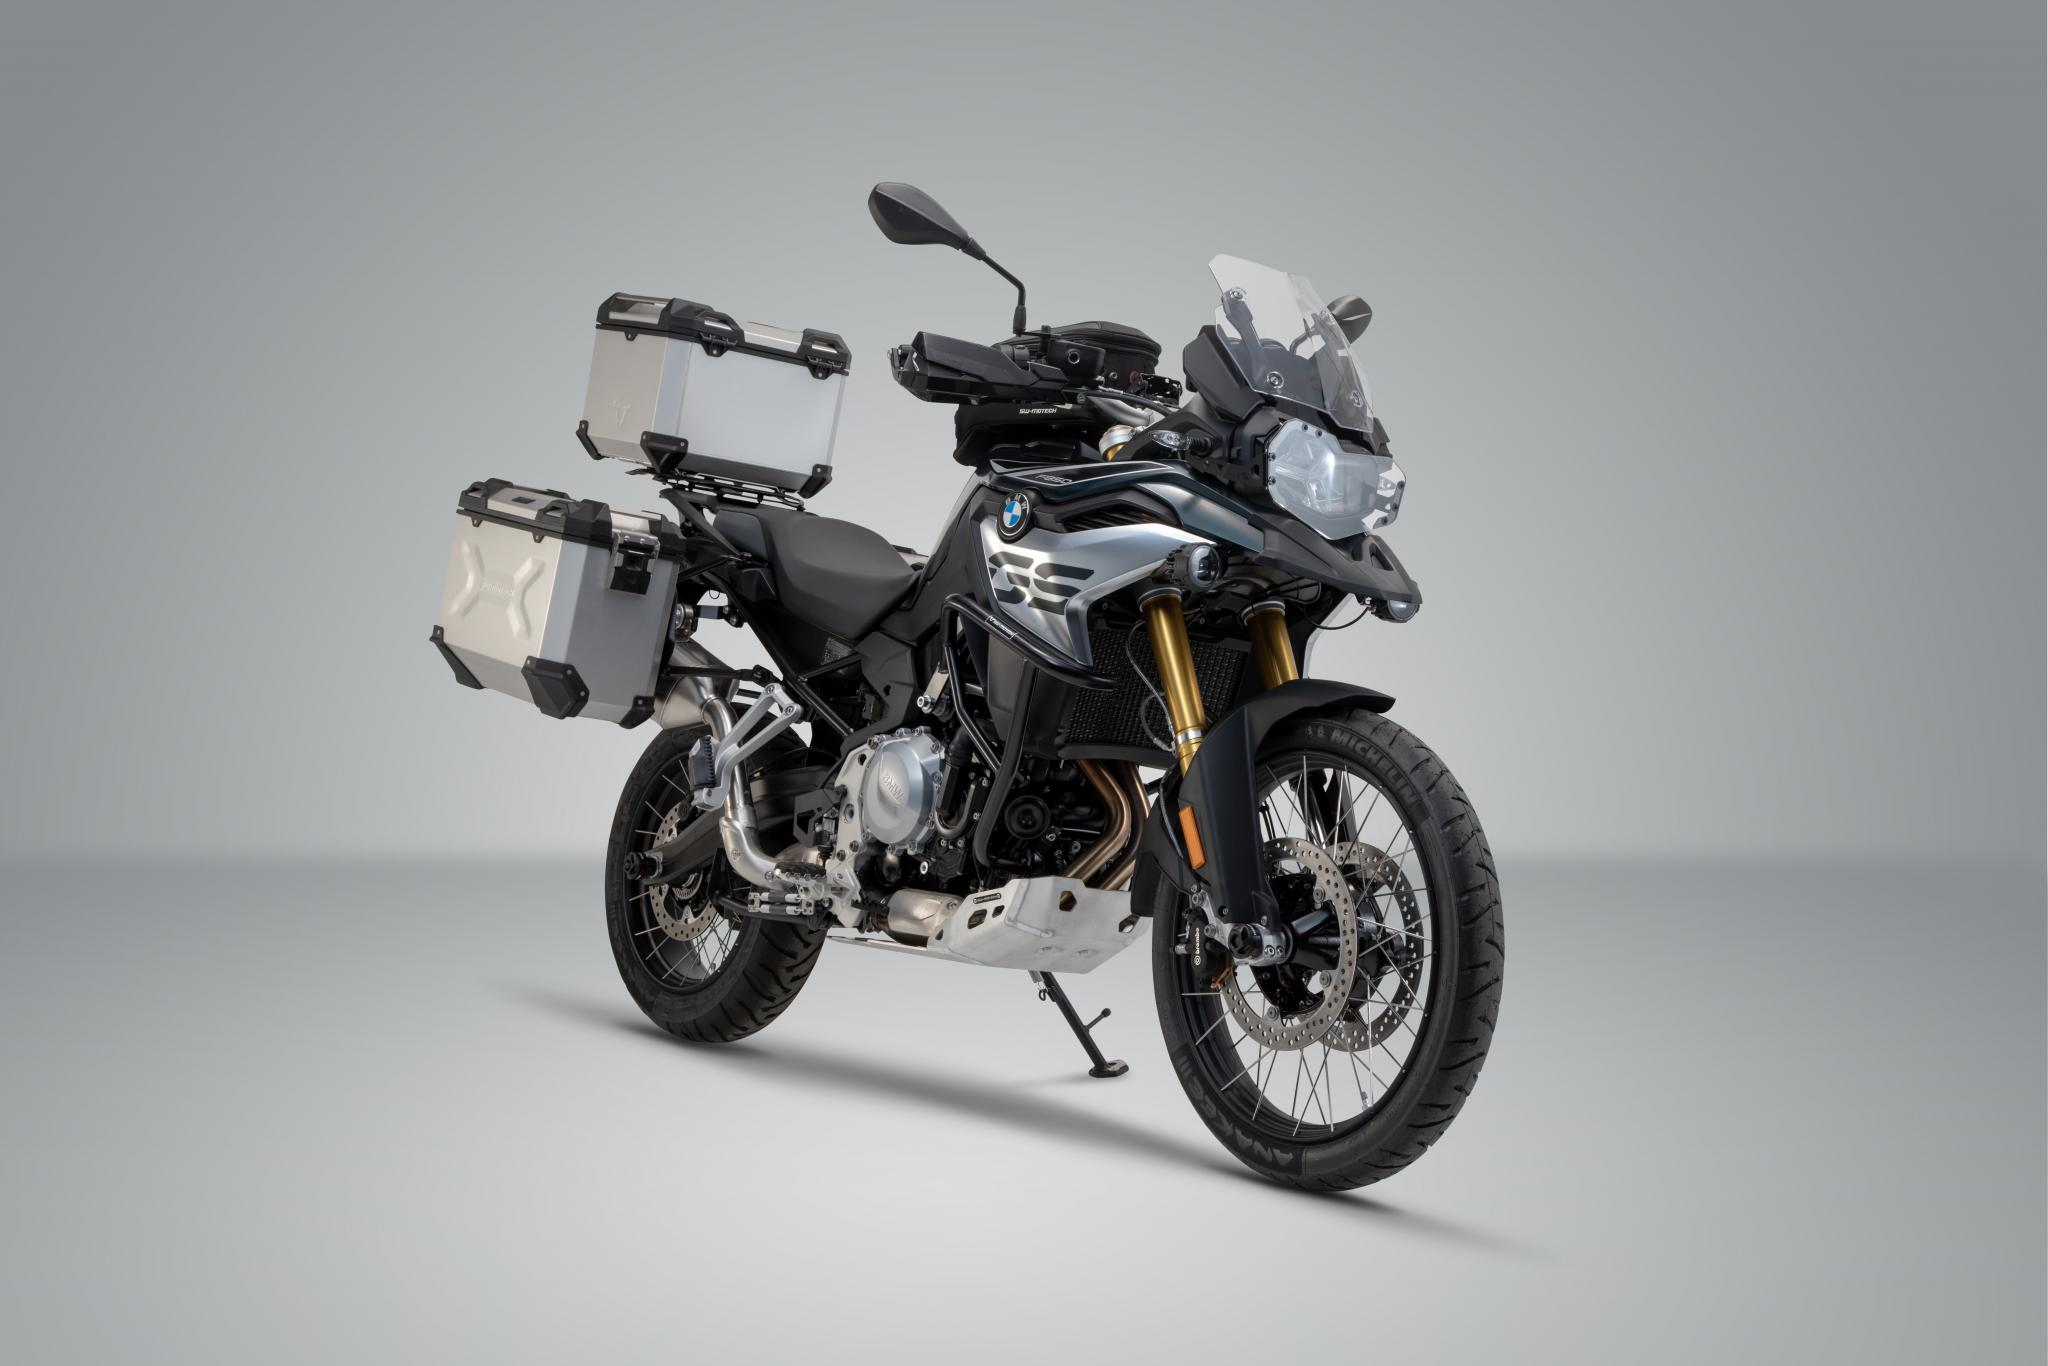 sw motech zubeh r f r abenteuer aller art mit der bmw f 850 gs. Black Bedroom Furniture Sets. Home Design Ideas